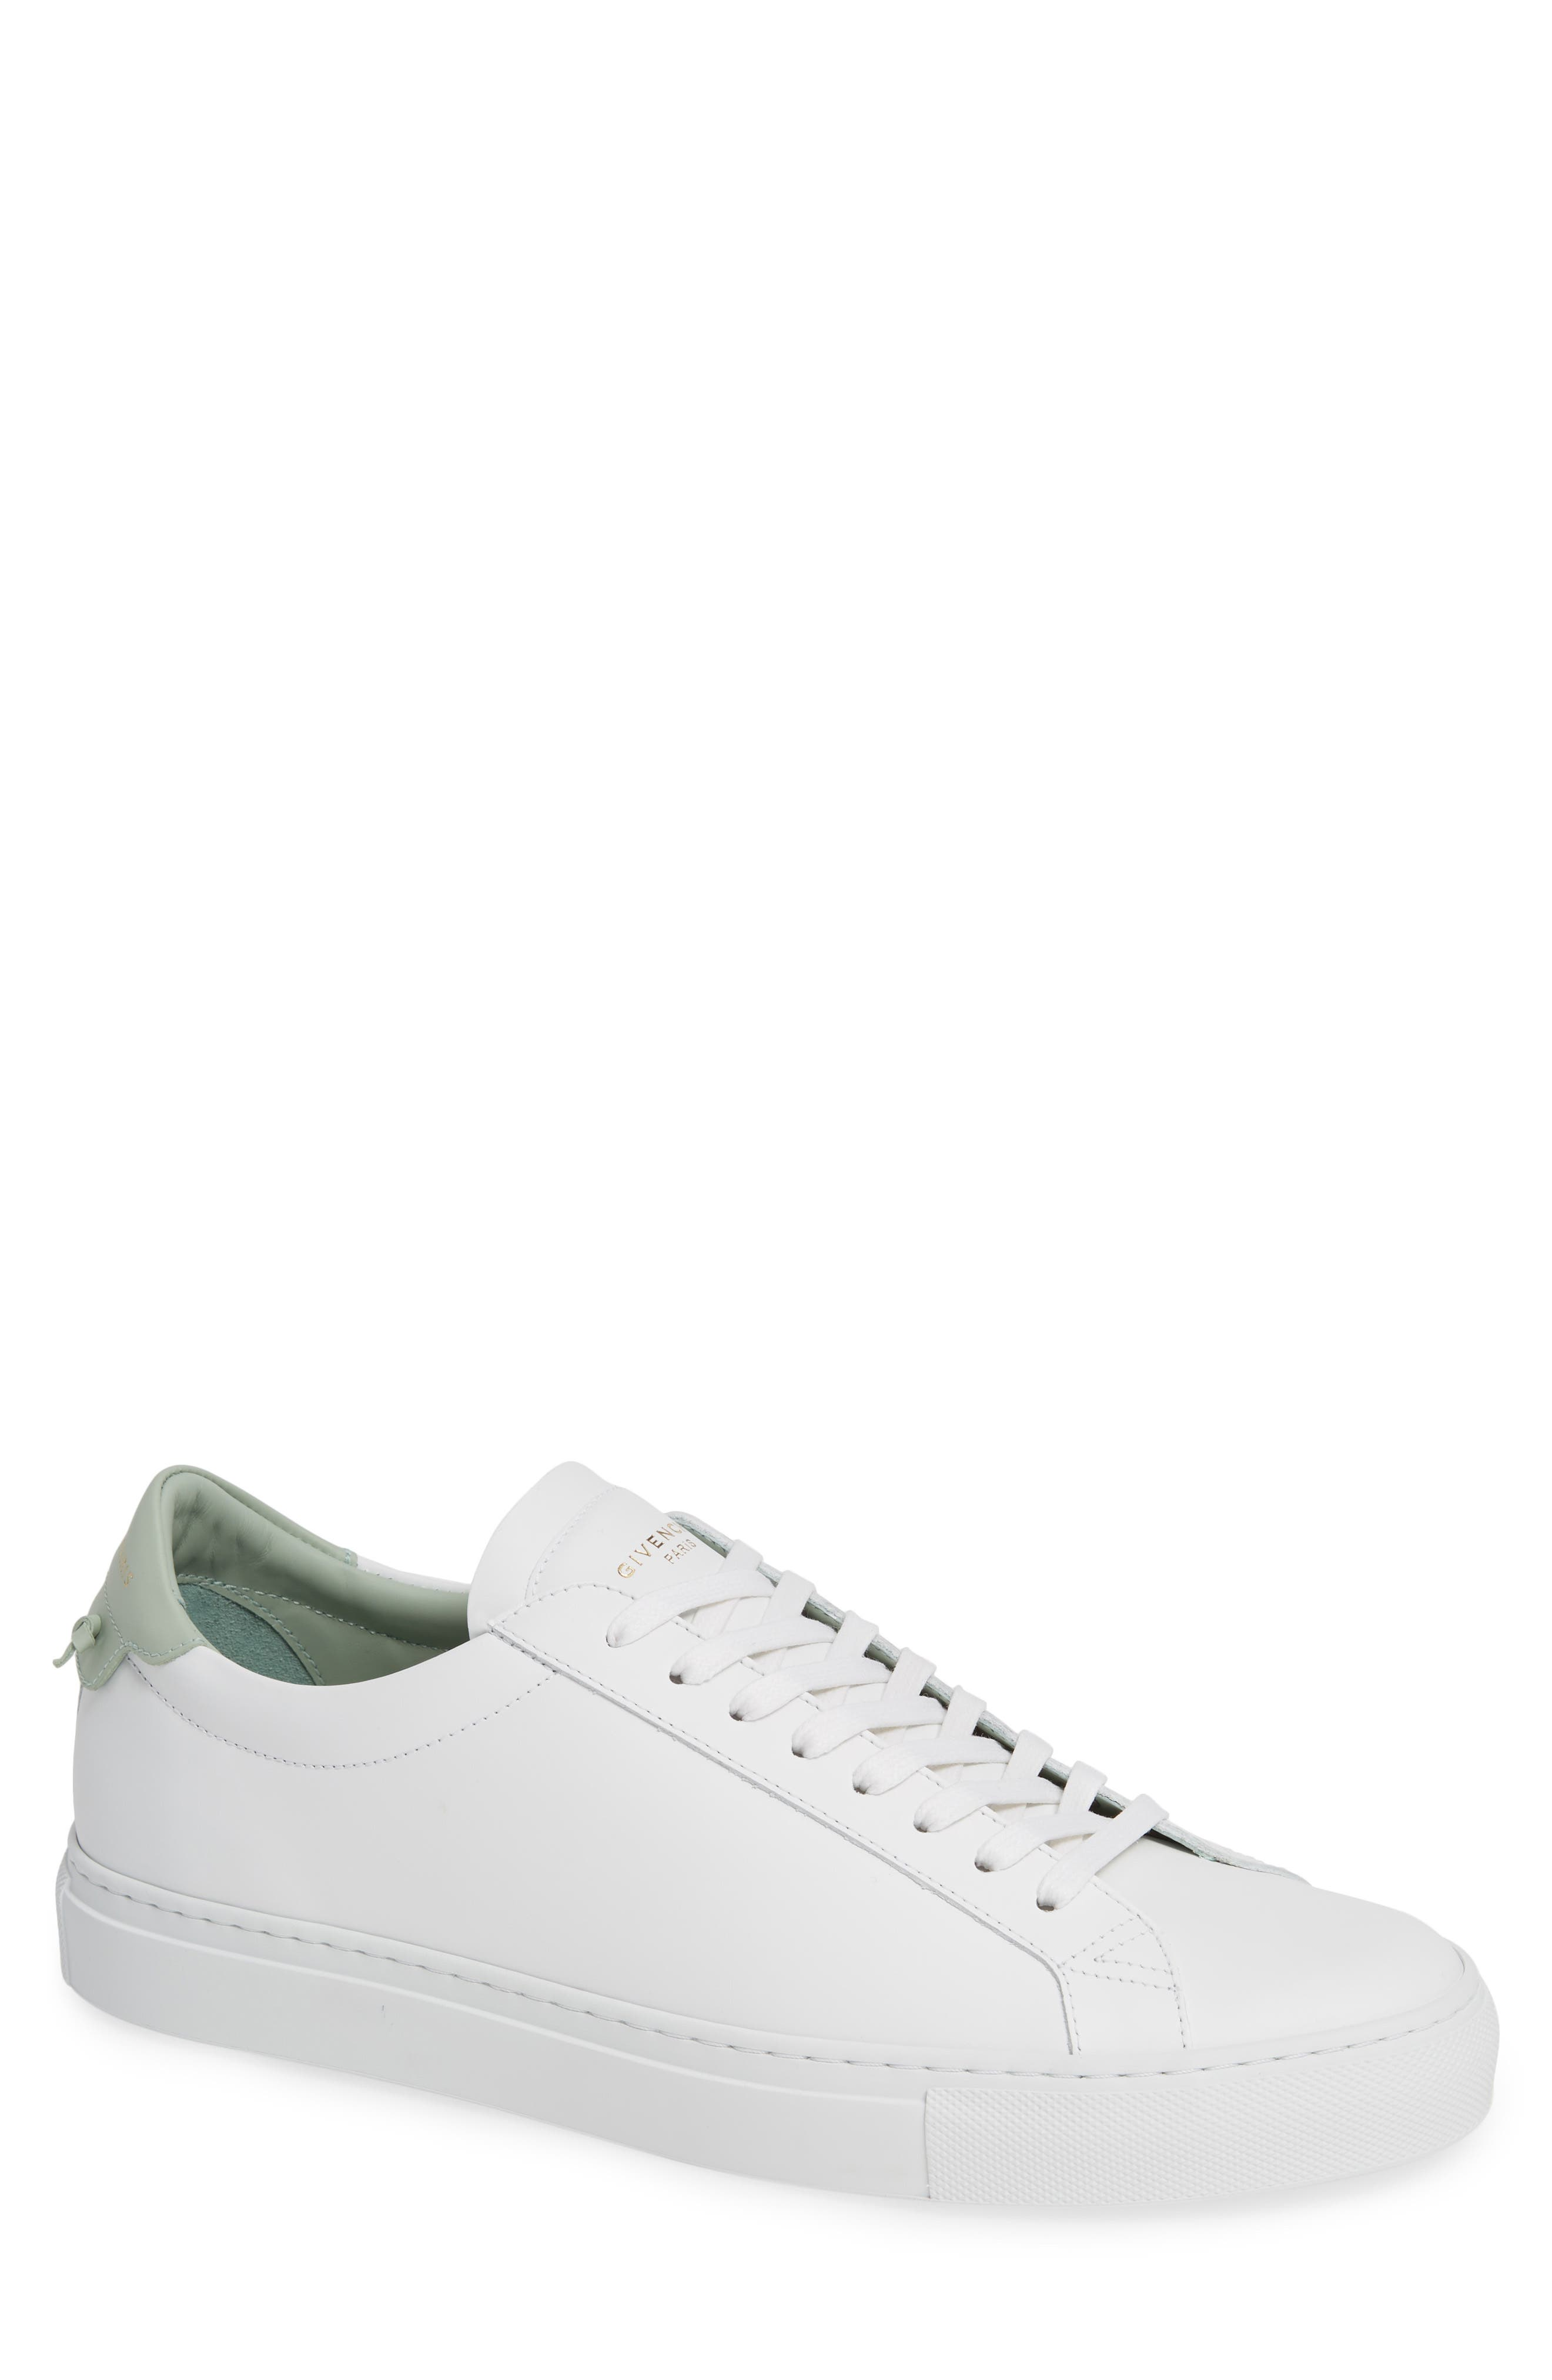 'Urban Knots Lo' Sneaker,                             Main thumbnail 1, color,                             WHITE/ GREEN